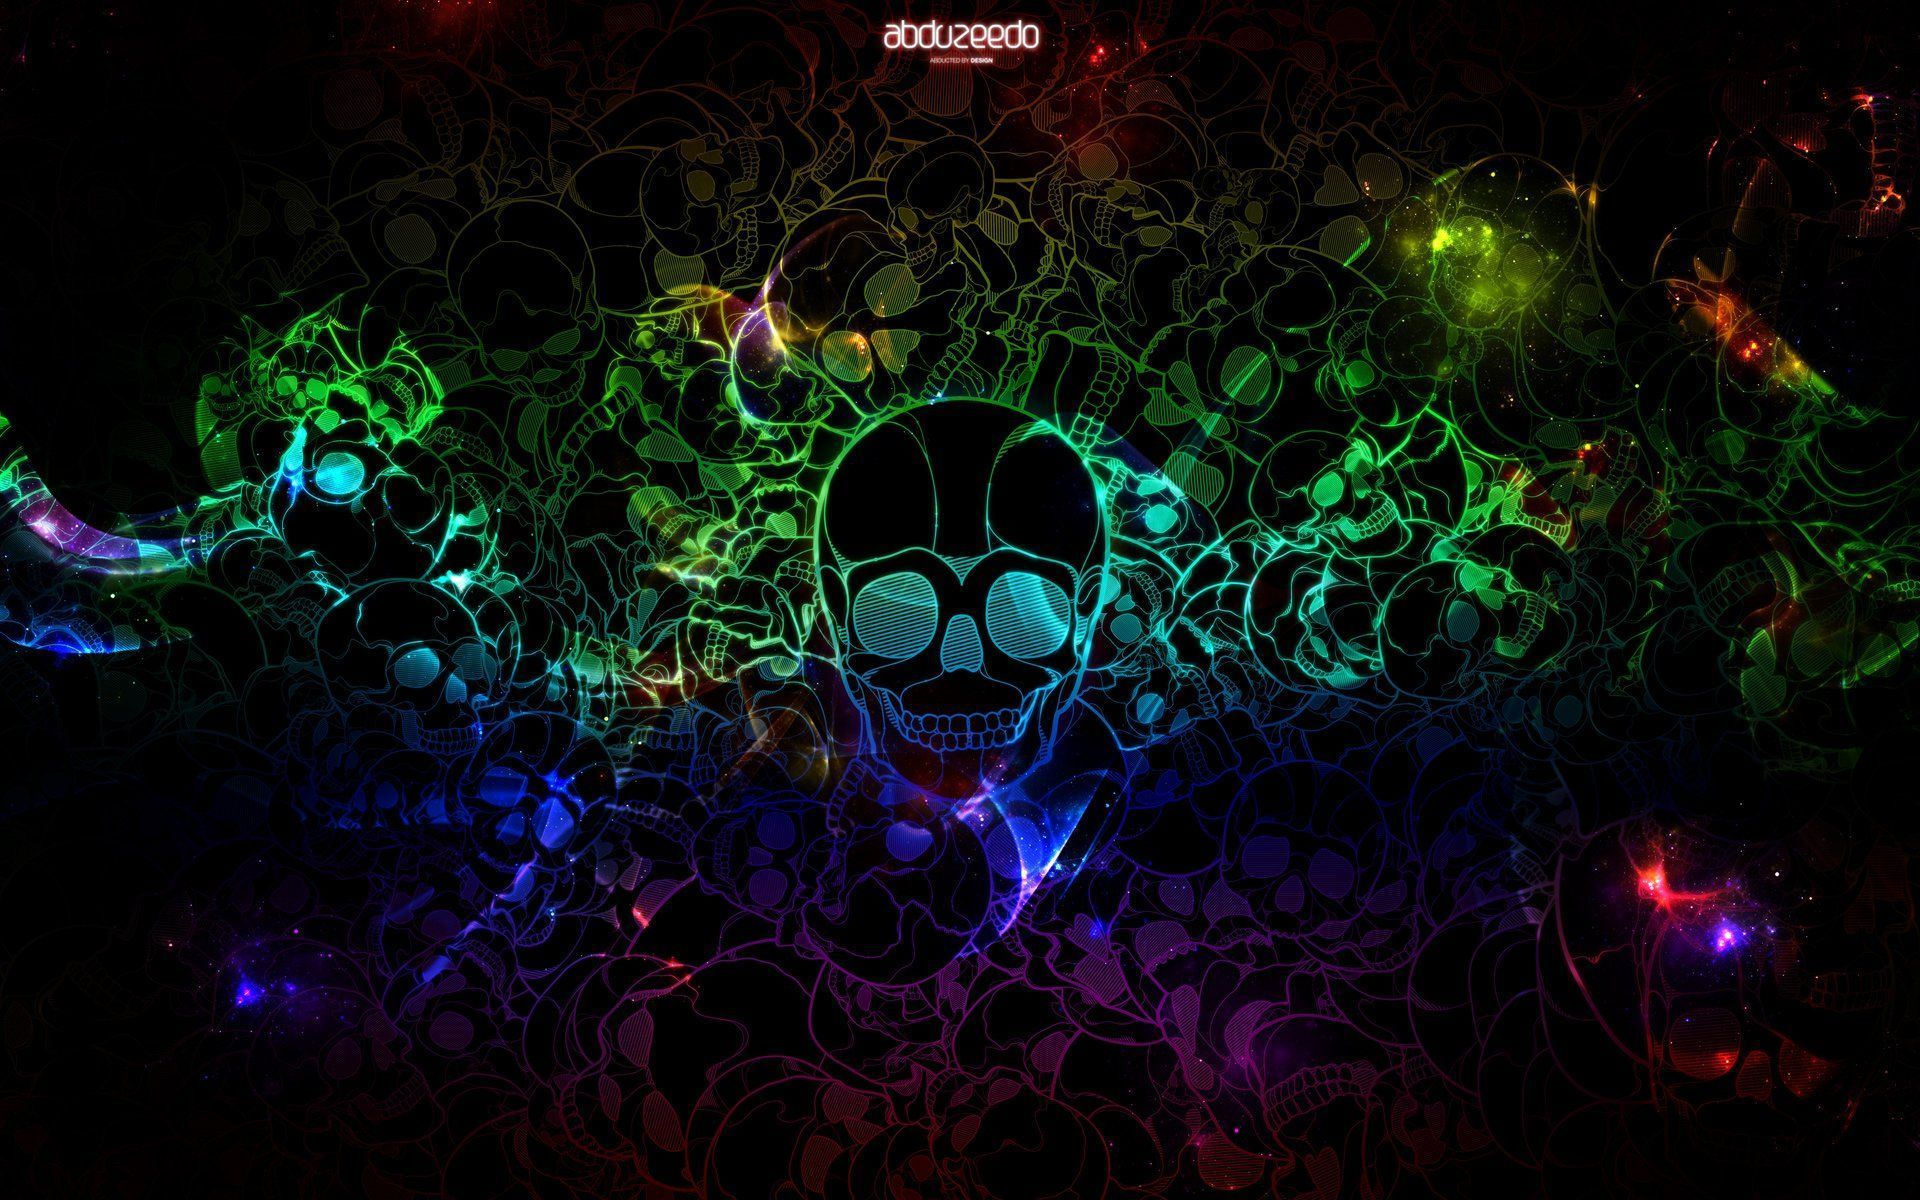 Wallpaper widescreen high definition razer wallpaper 4k wallpaper - Grey Peacock Hd Widescreen Skull Pic 1920 X 1200 Px Find This Pin And More On Wallpapers 4k